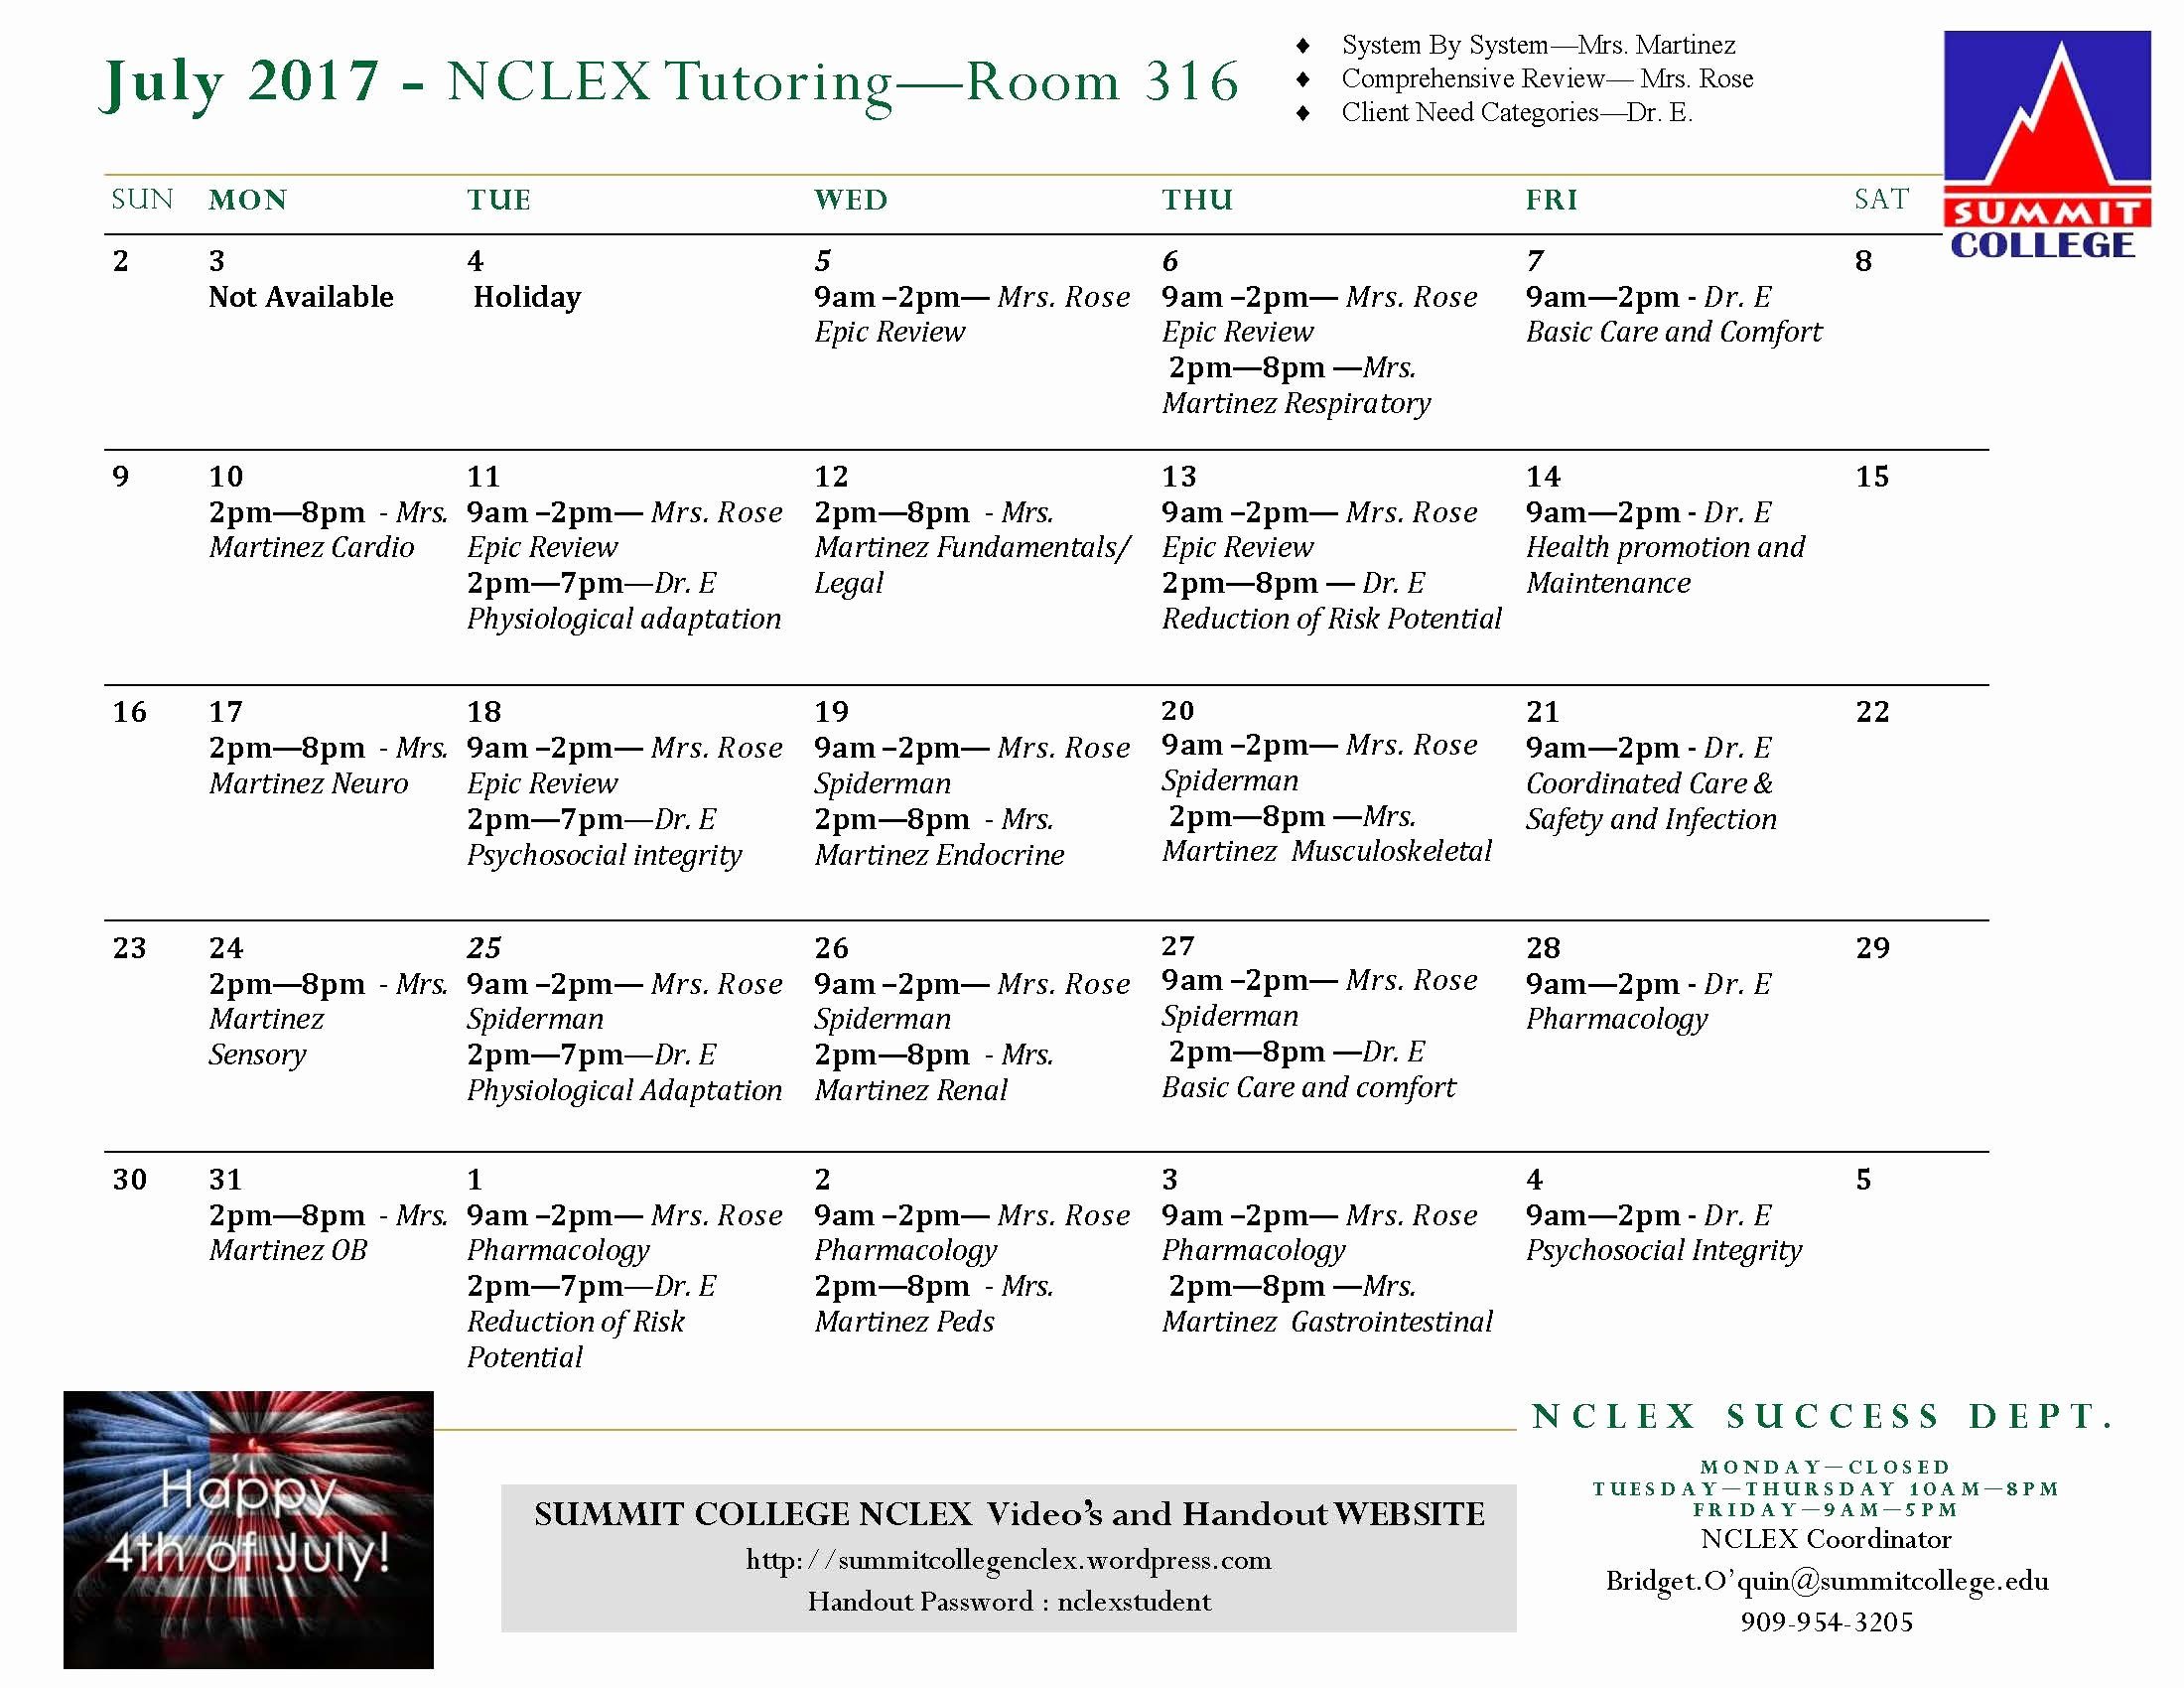 Nclex Study Plan Template New July 2017 – Nclex Tutoring – Room 316 Summit College